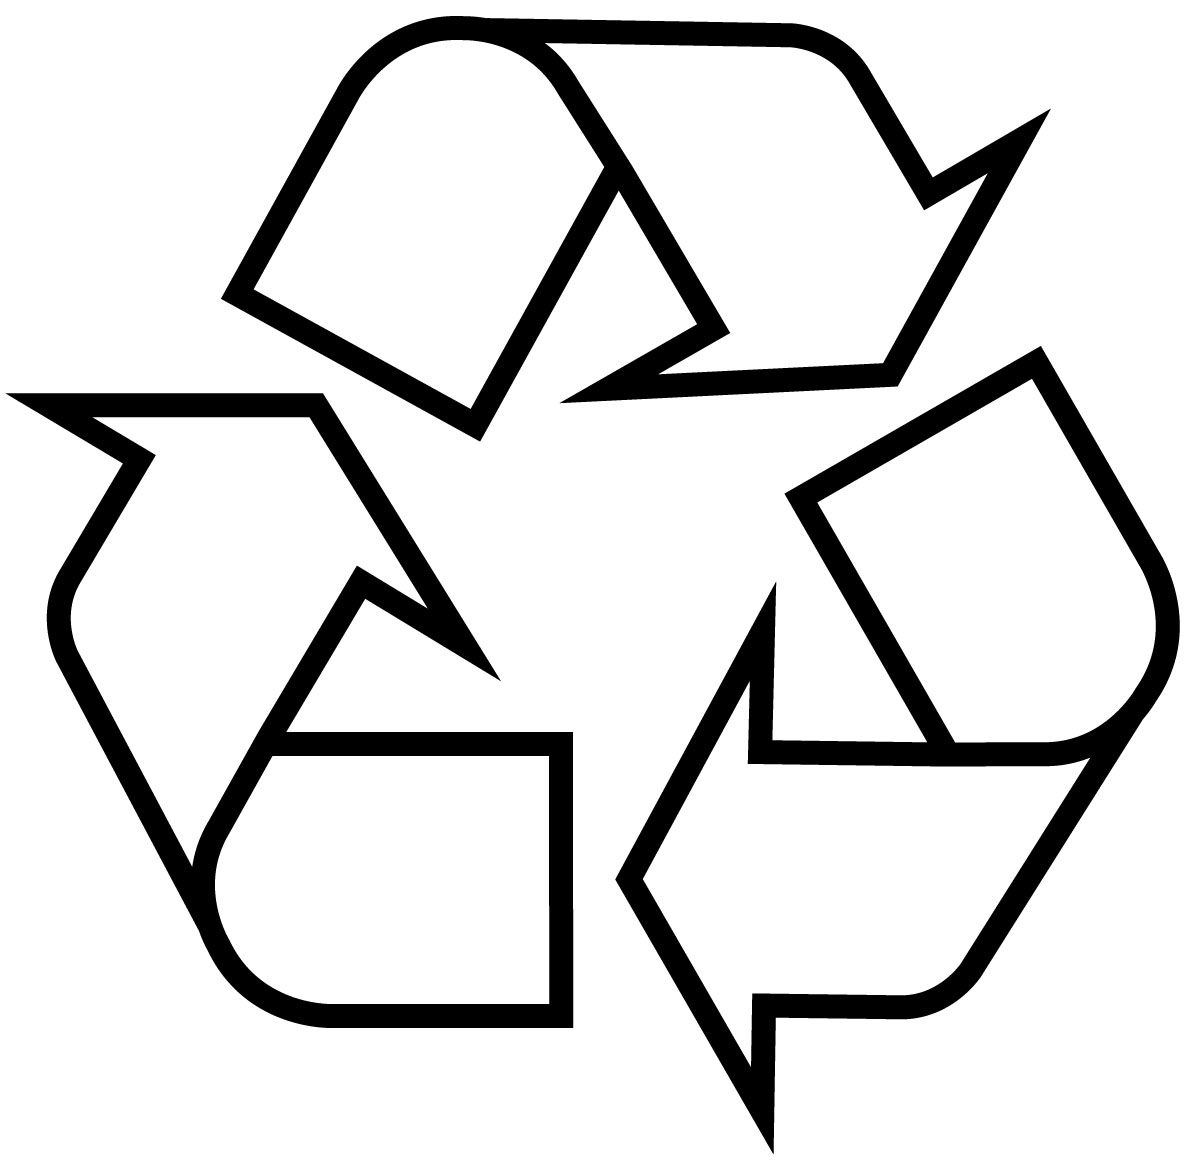 Picture Of Recycling Symbol - ClipArt Best